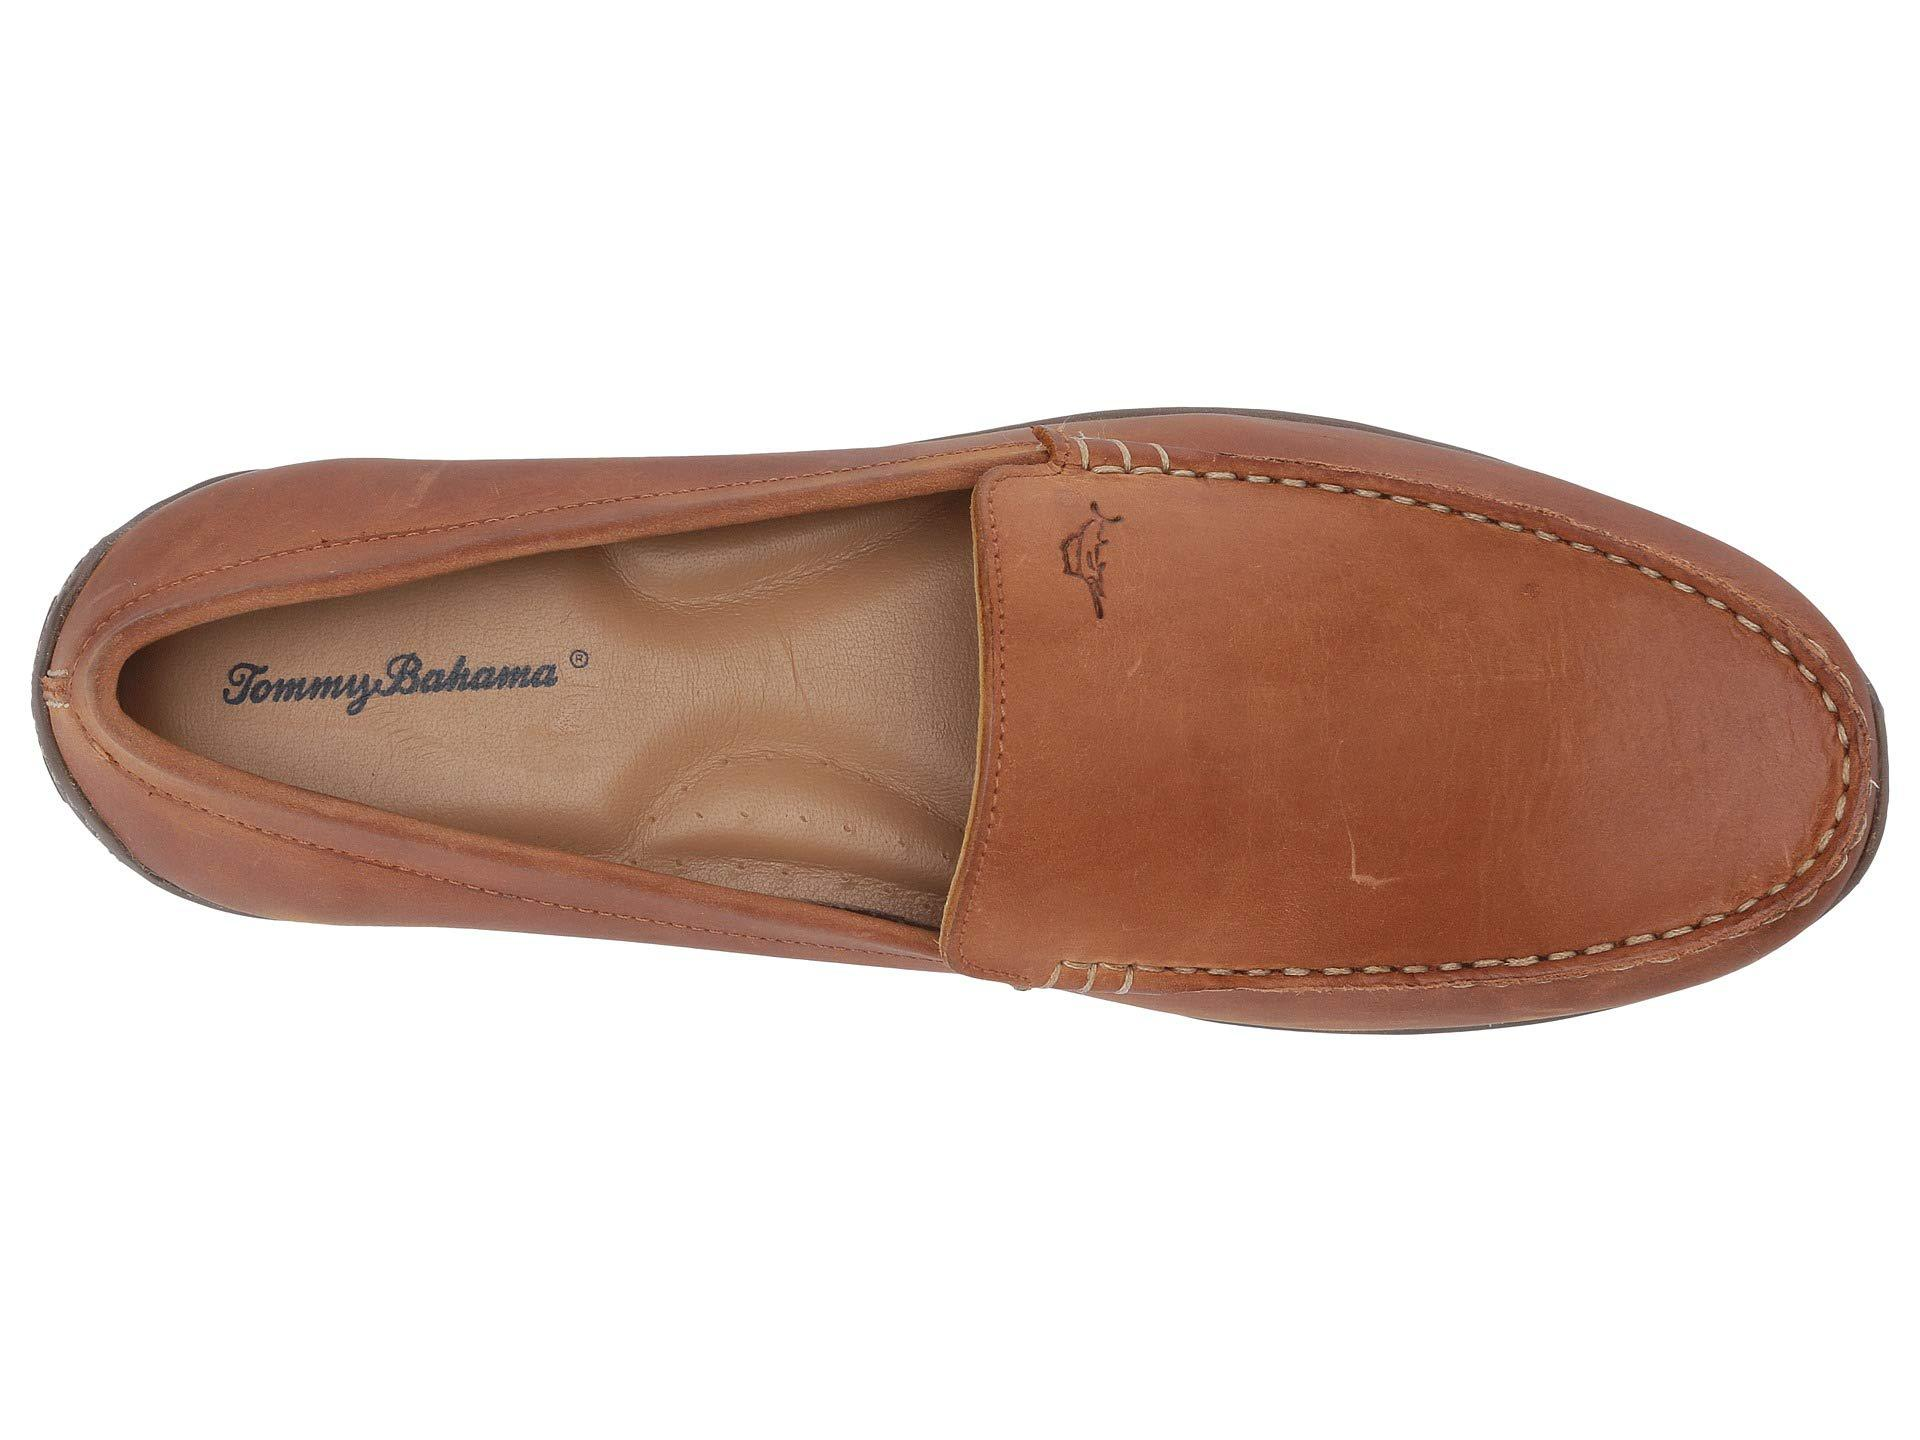 76e75cfc6bf Tommy Bahama - Brown Acanto for Men - Lyst. View fullscreen